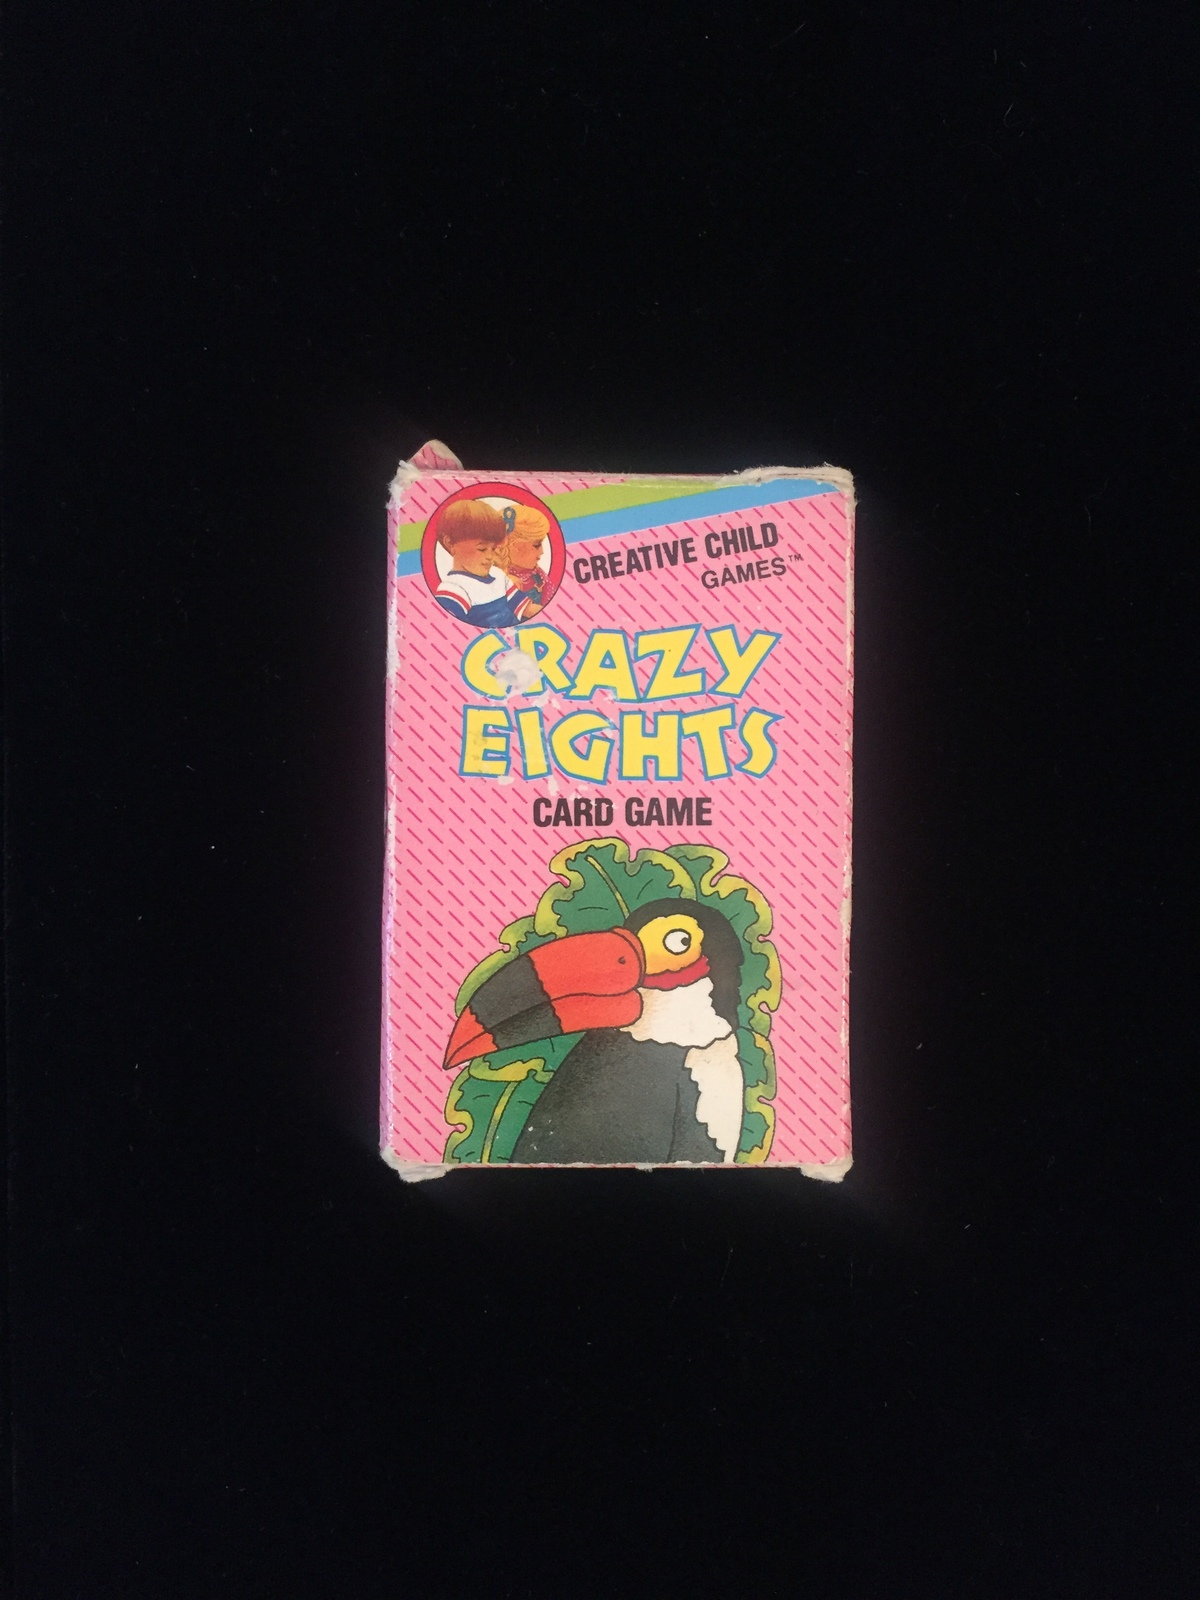 Vintage 80s Creative Child Games card game: CRAZY EIGHTS